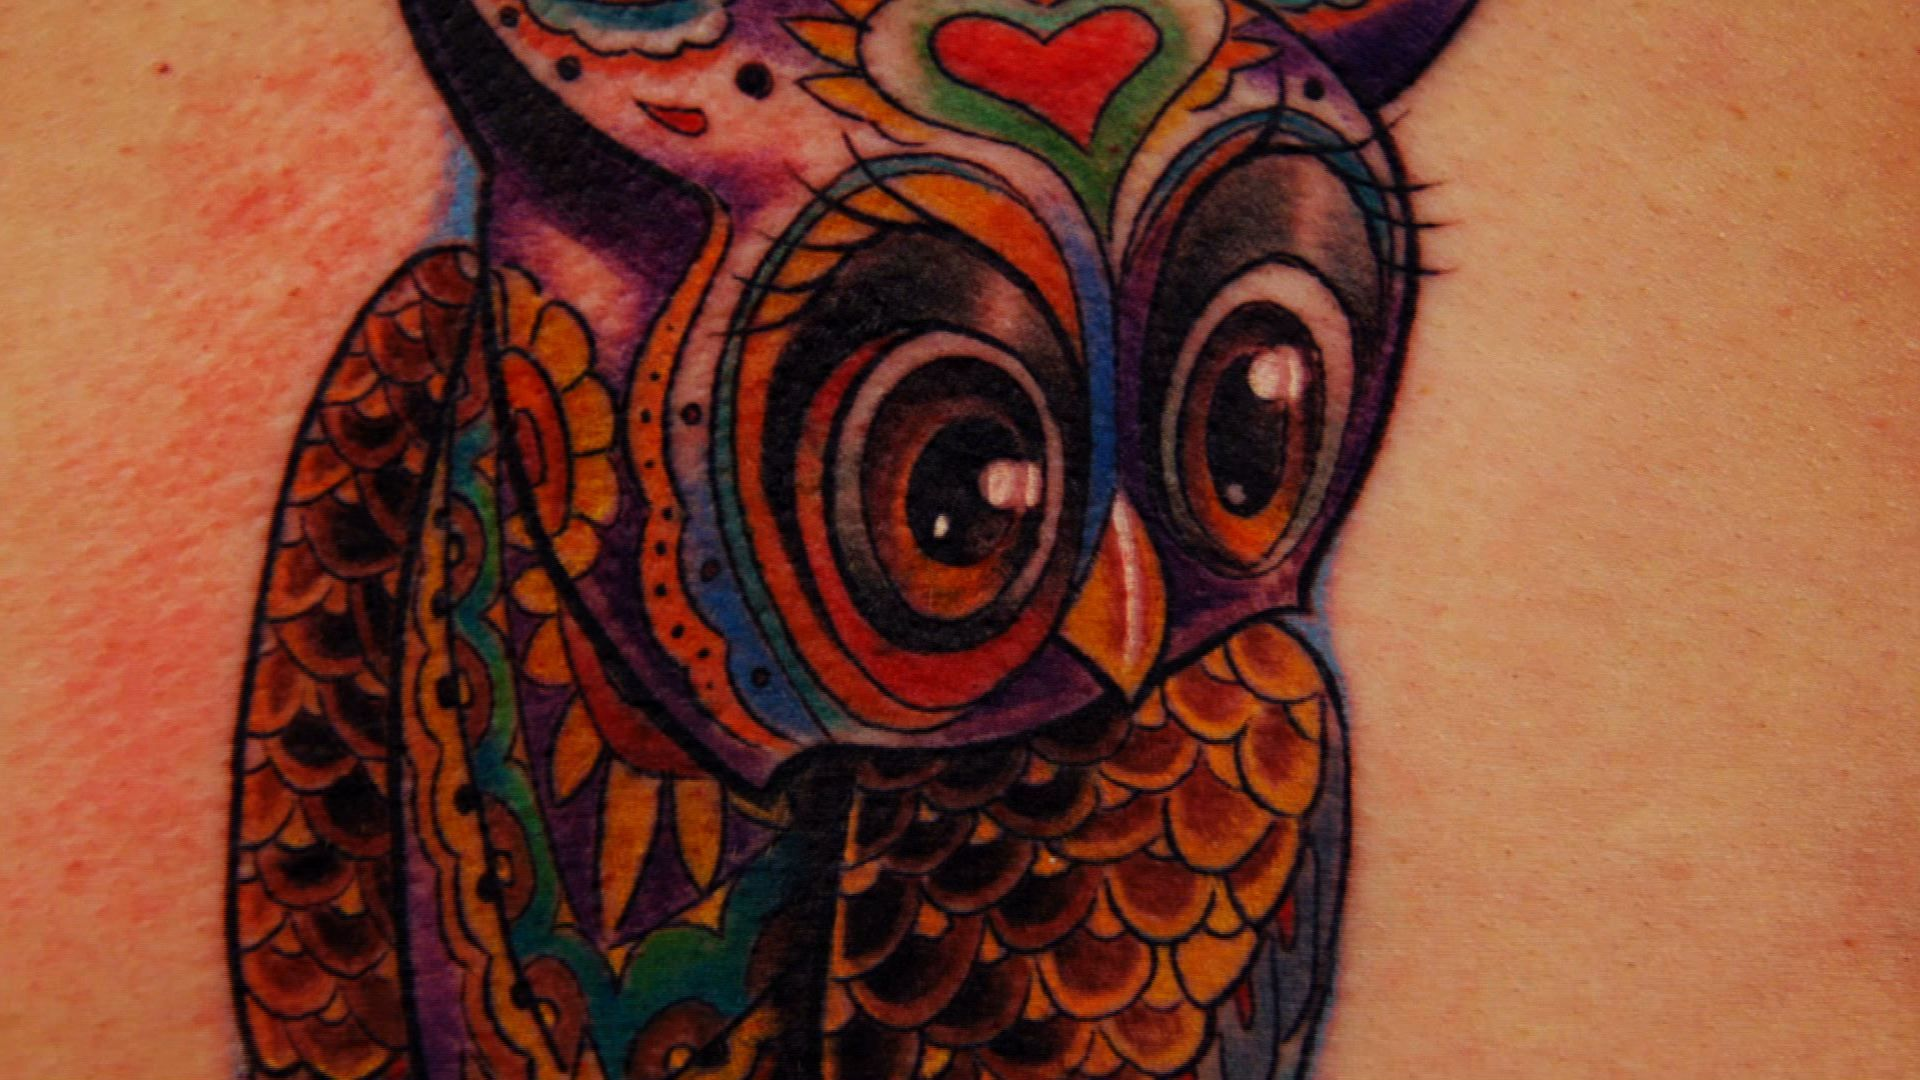 Wise as an owl tattoo nightmares spike for Tattoo nightmares tommy helm